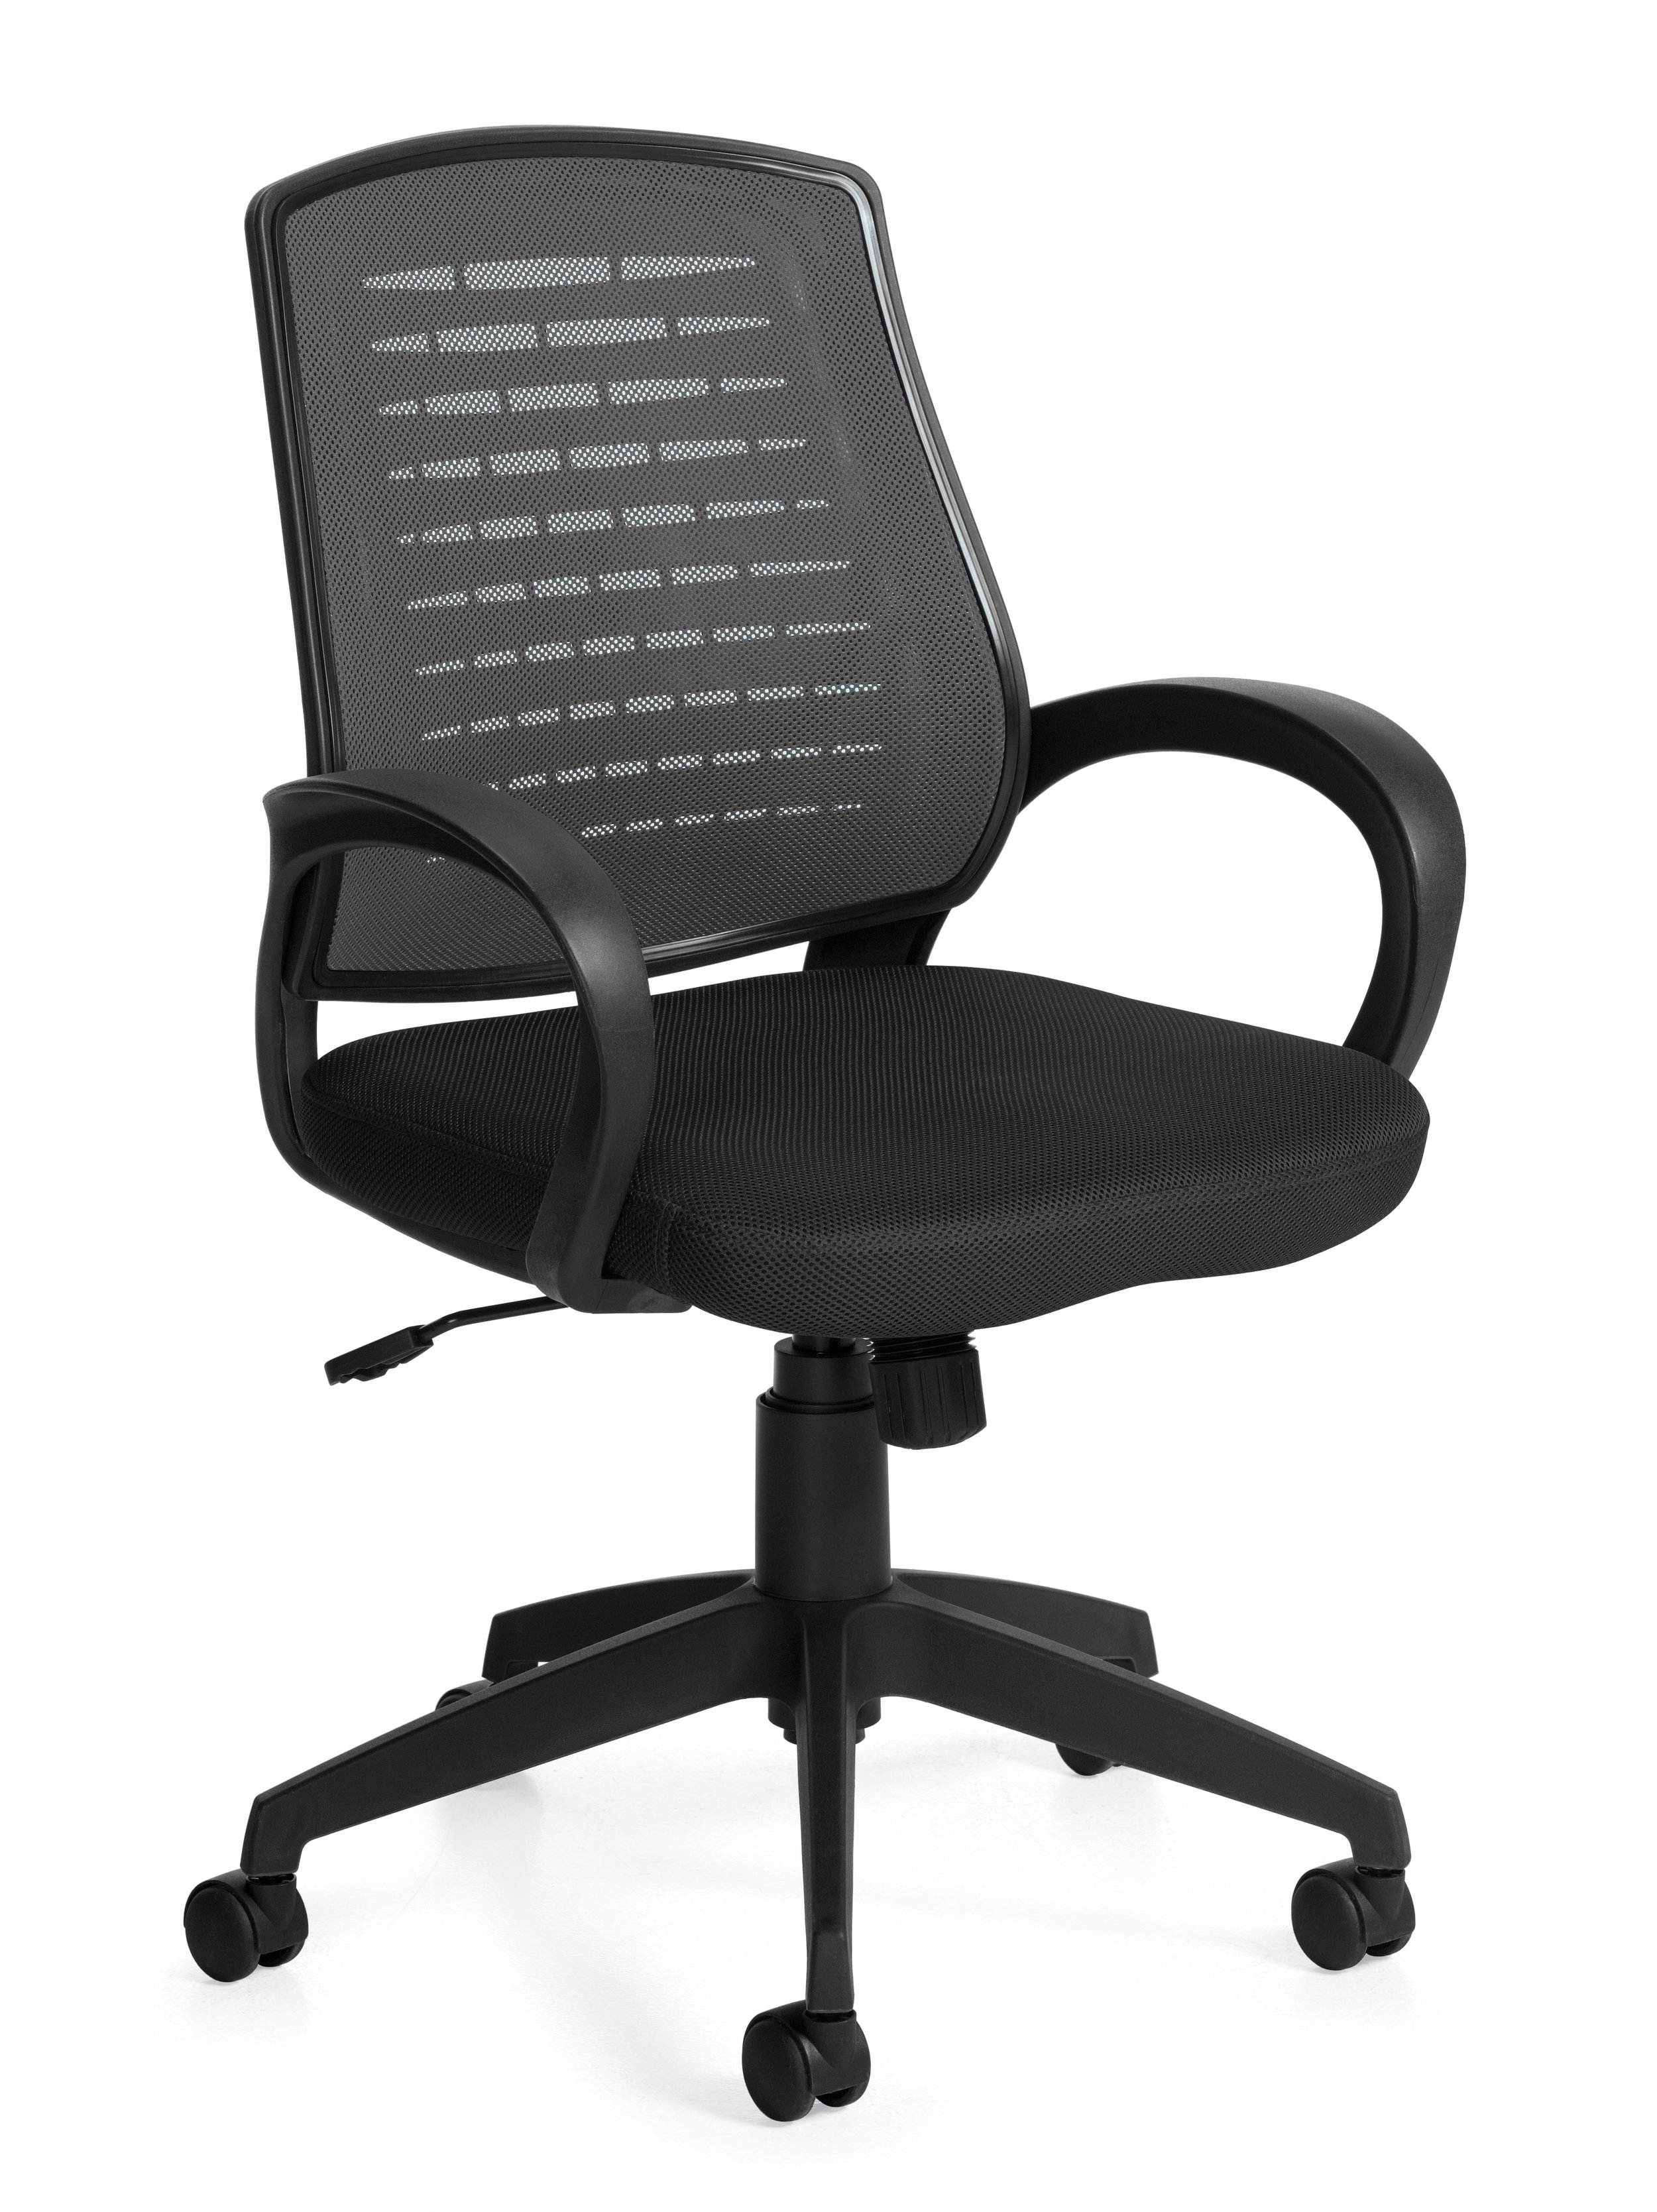 OTG 10902B Mesh Back Manager's Chair